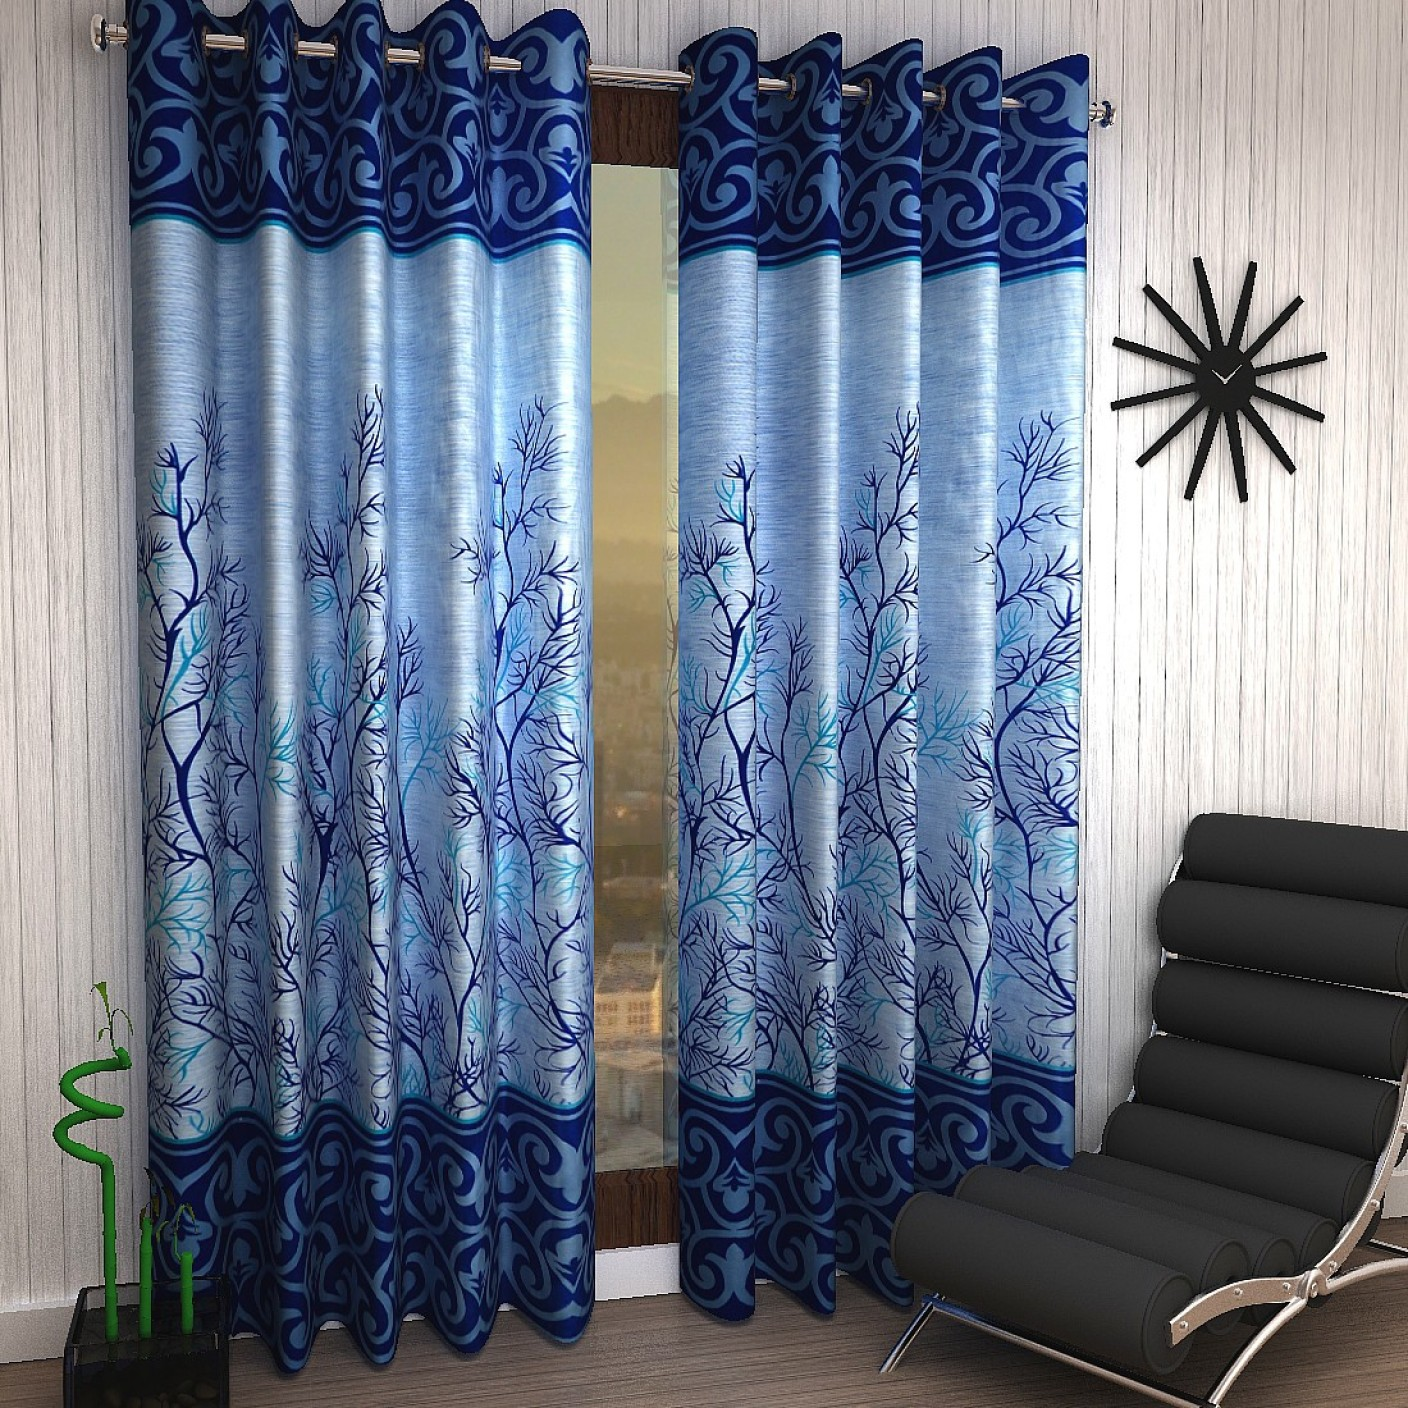 Home Sizzler Polyester Window Curtain 150 Cm 4 Ft Pack